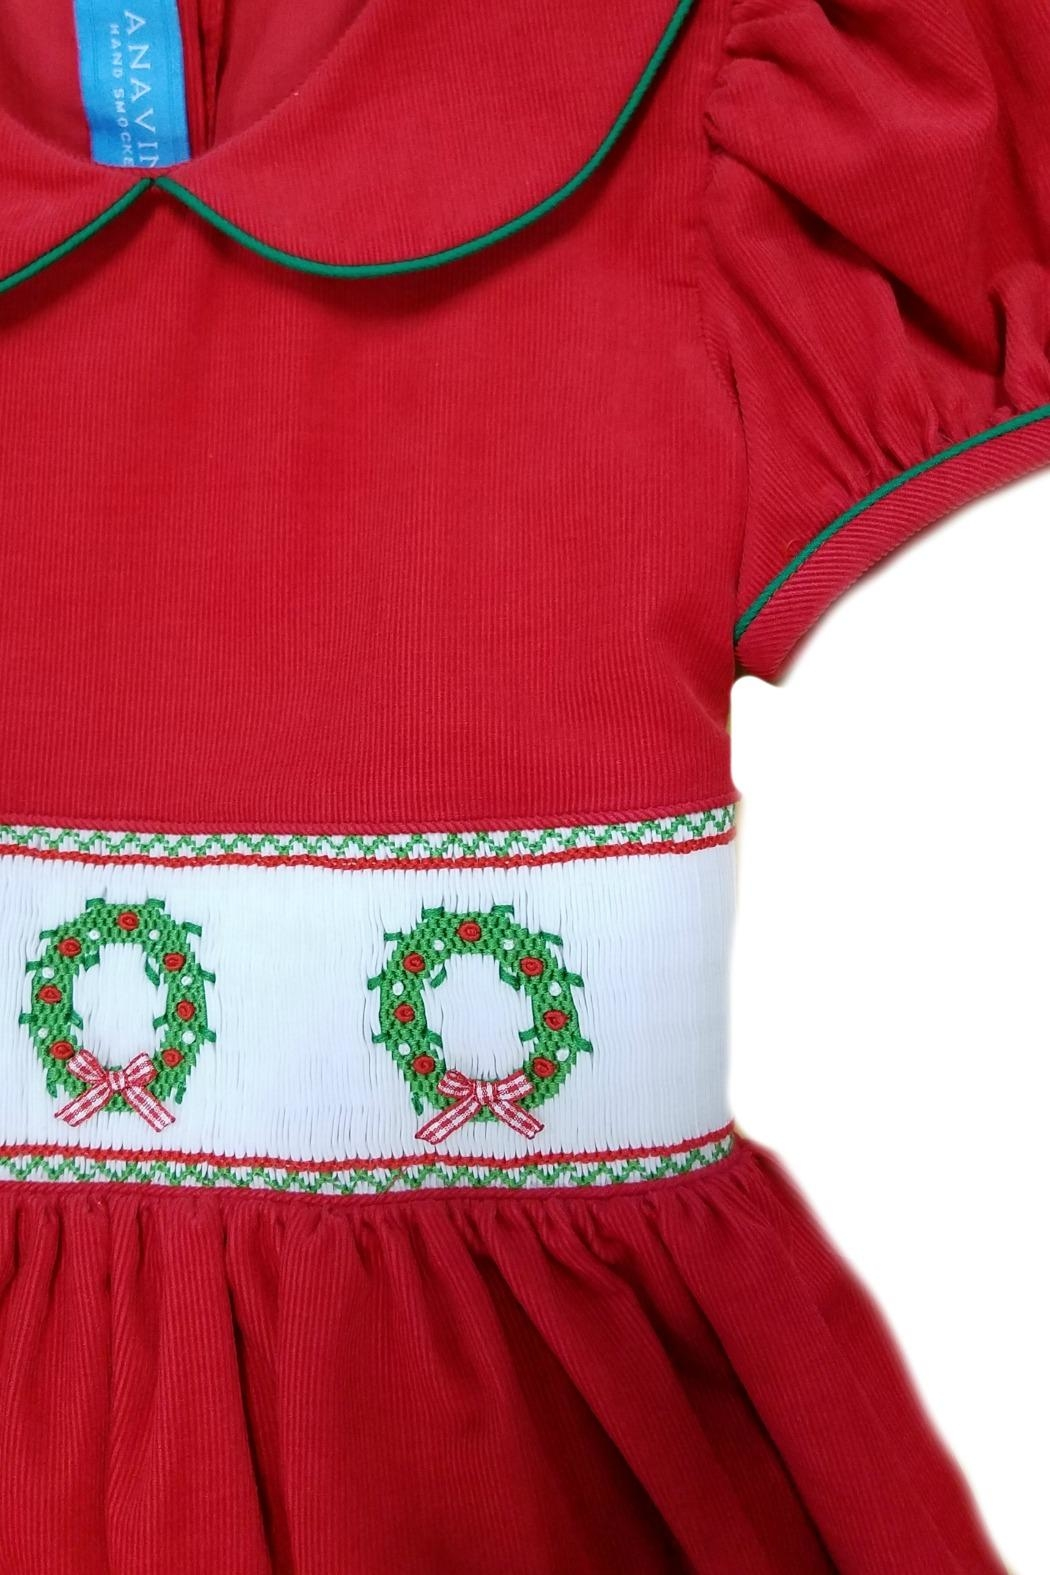 ANAVINI Red-Corduroy-Smocked-Christmas-Wreath-Dress - Front Full Image